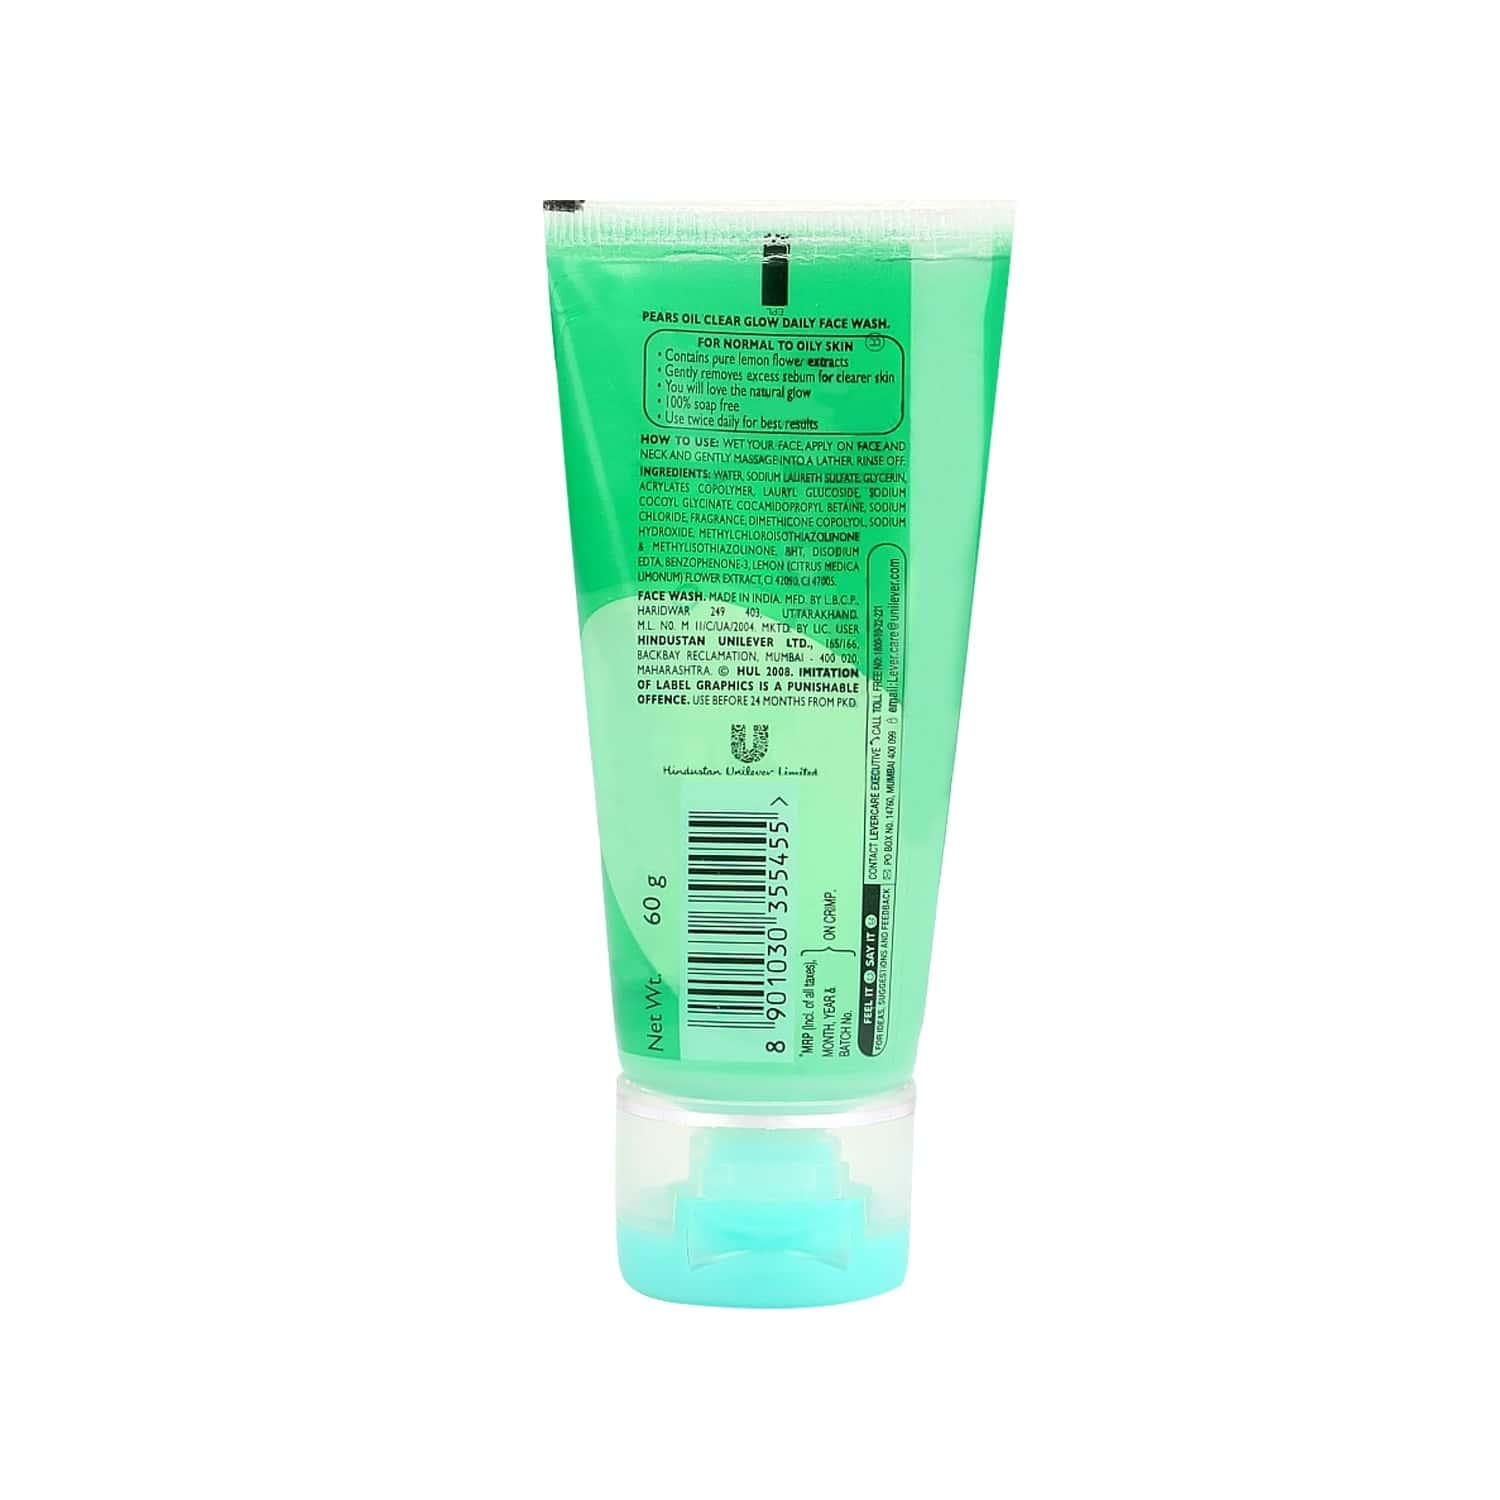 Pears Oil Clear Glow Face Wash Tube Of 60 G